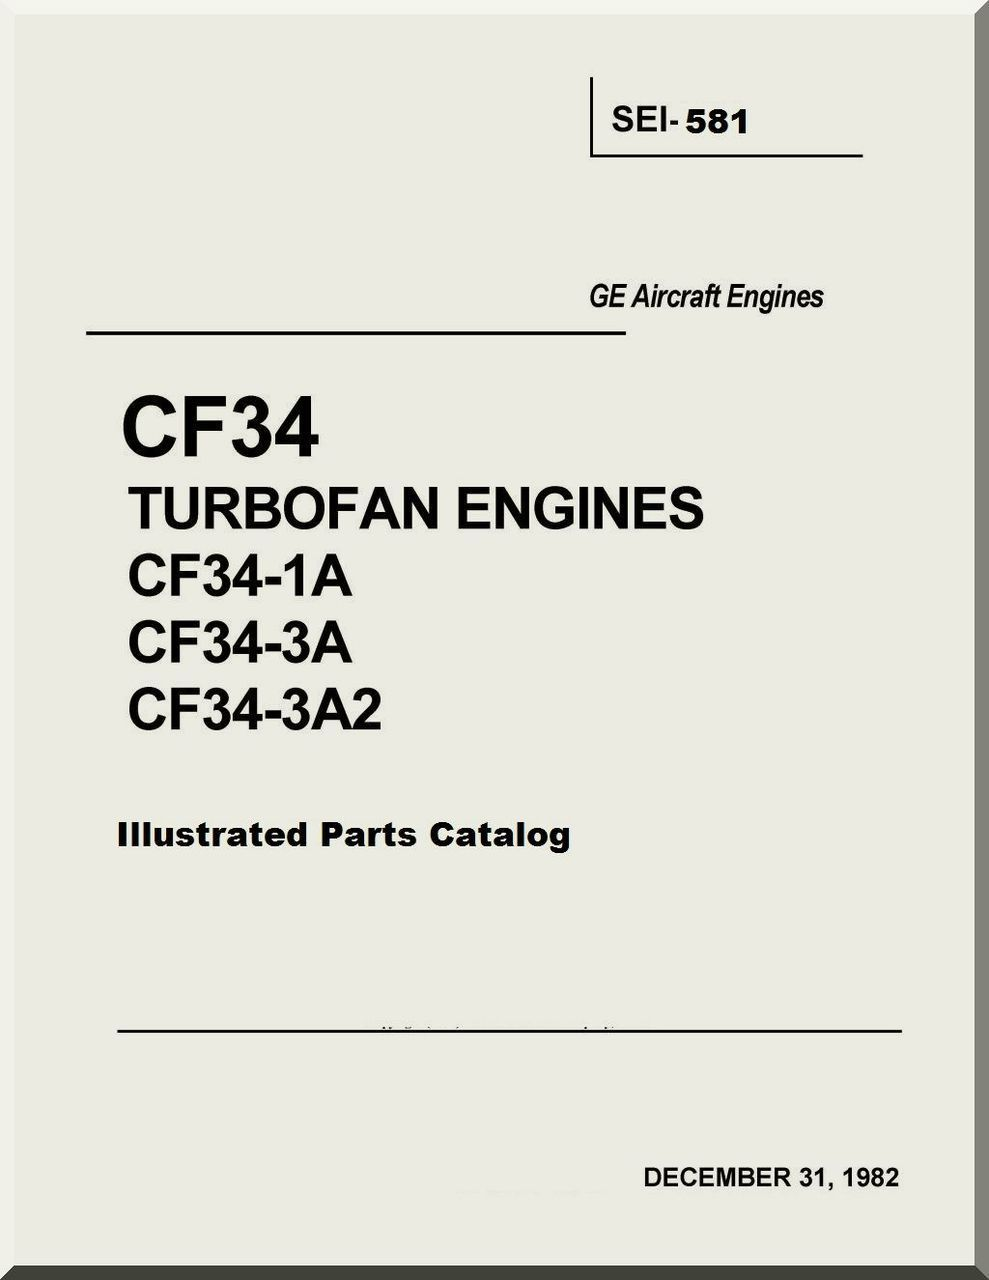 medium resolution of  illustrated parts catalog manual sei 581 aircraft reports aircraft manuals aircraft helicopter engines propellers blueprints publications